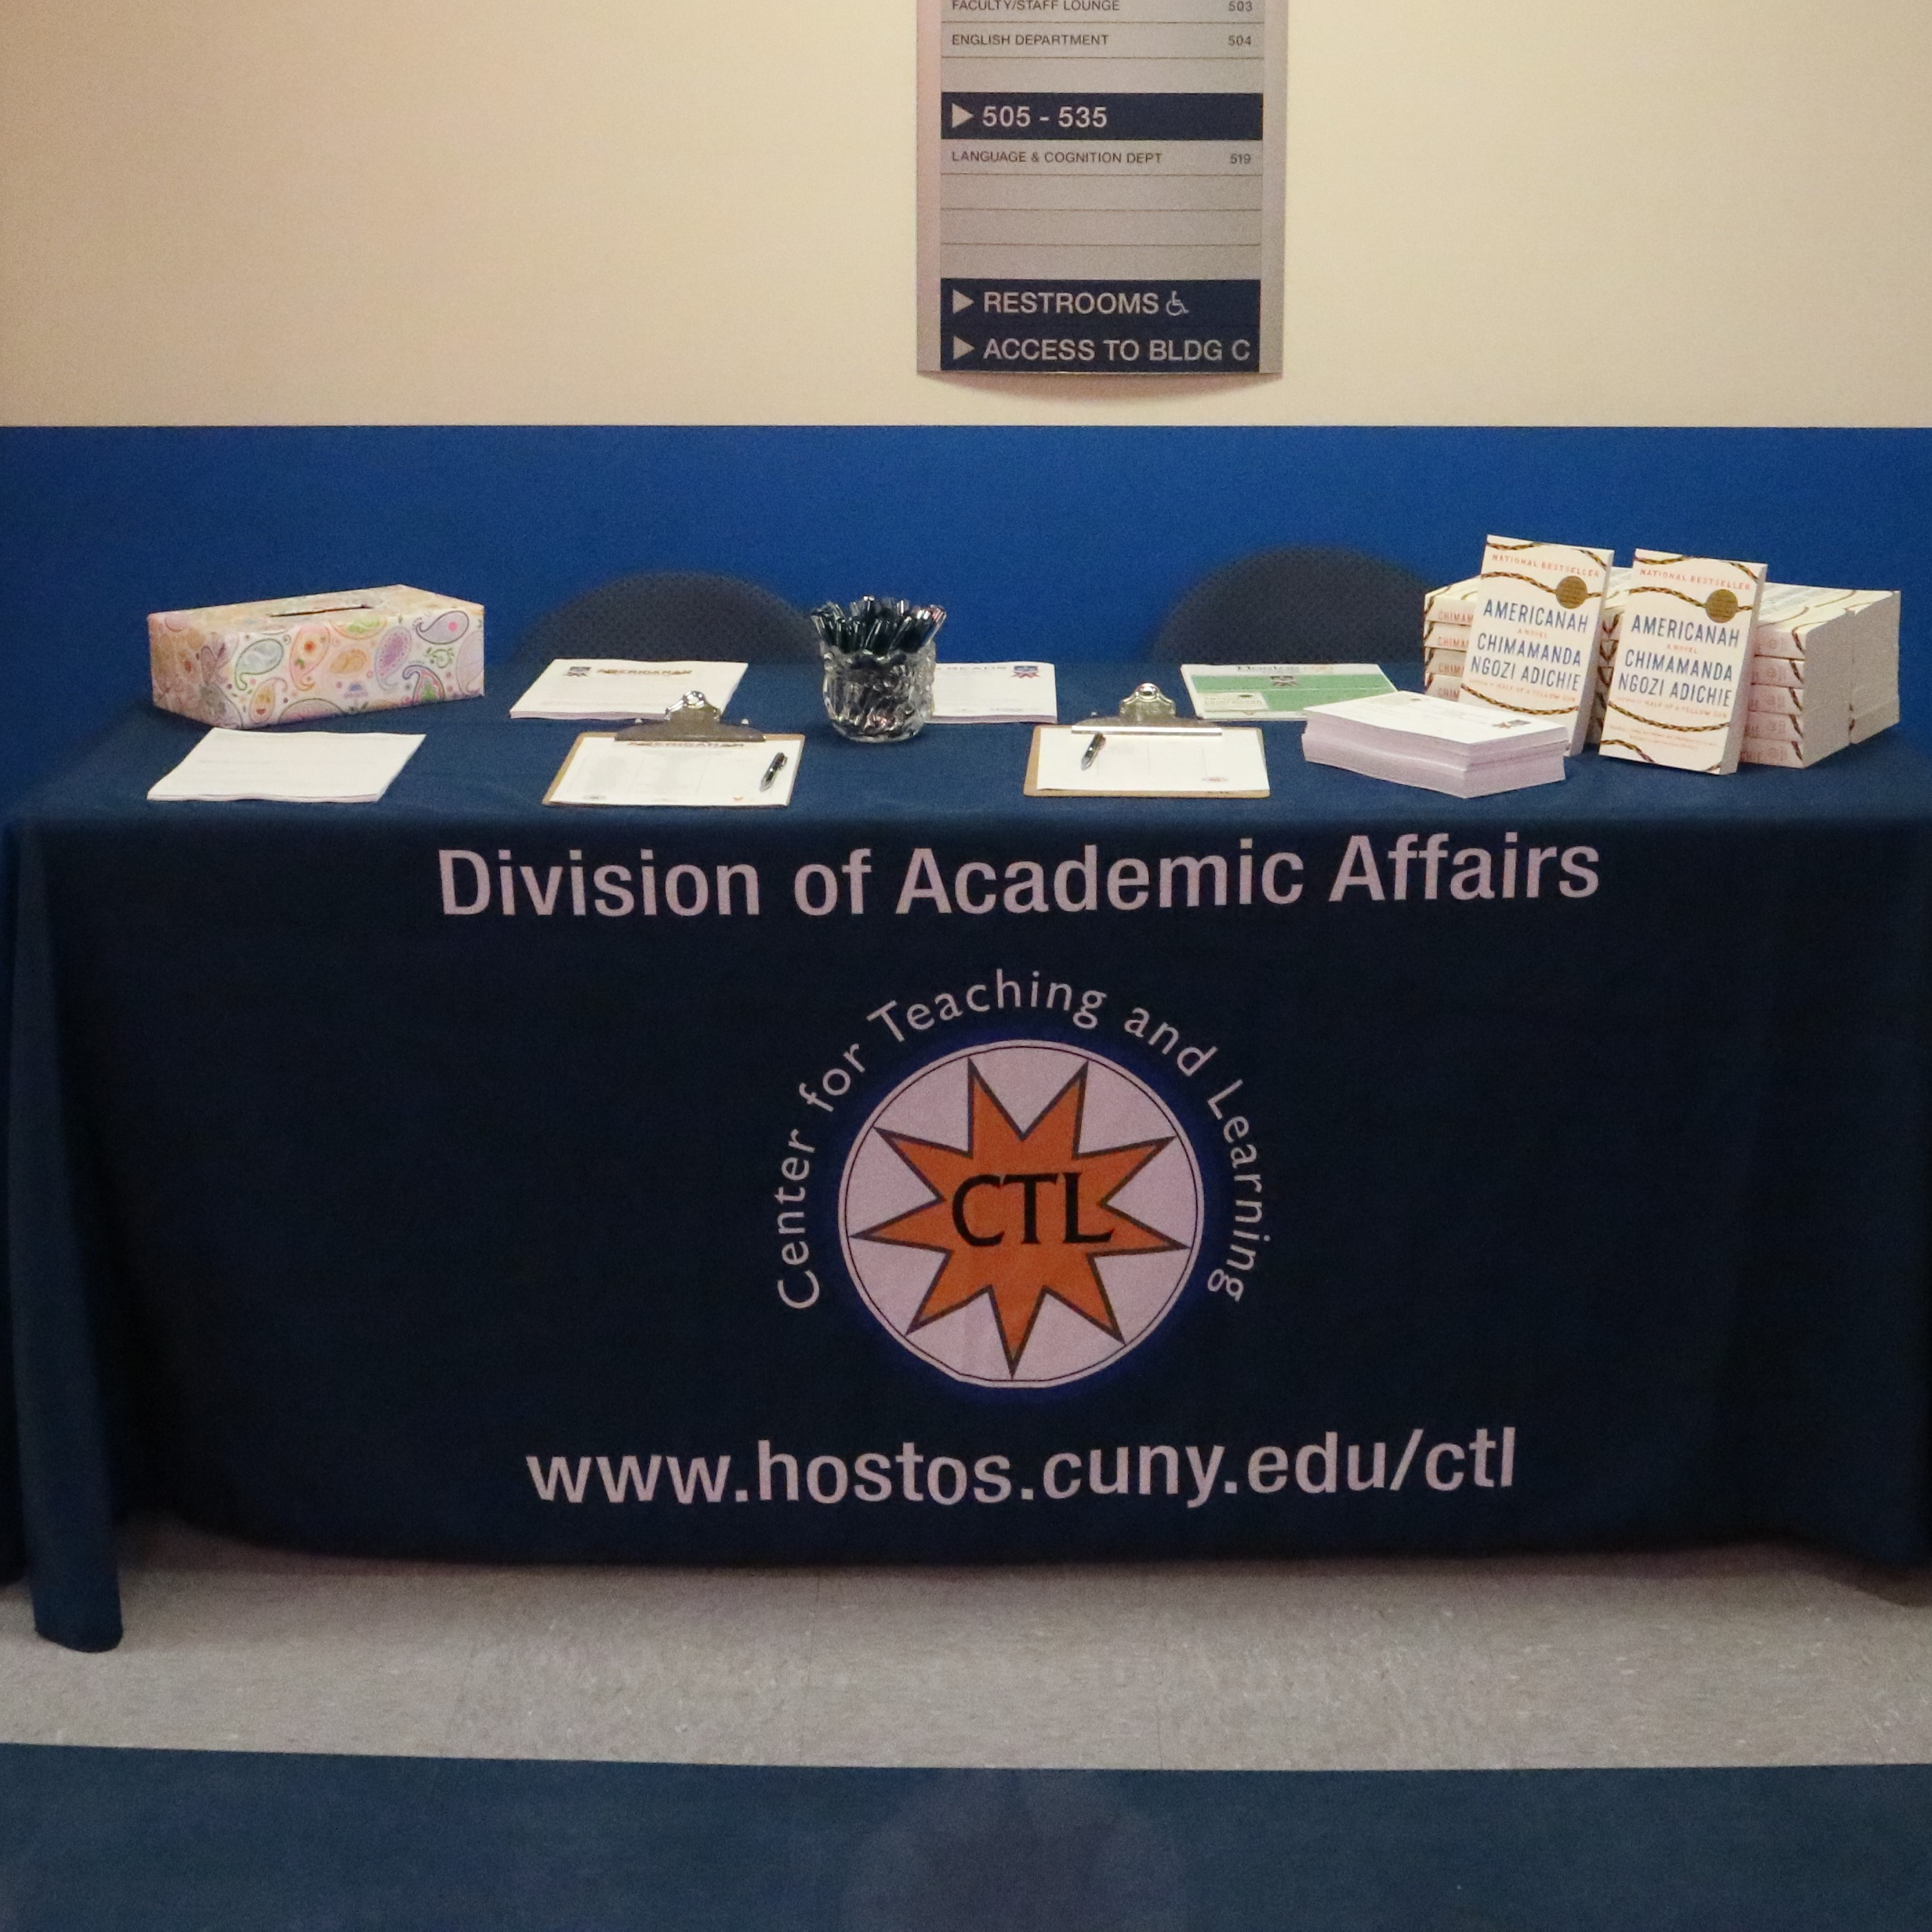 An image of the sign-in desk at an event